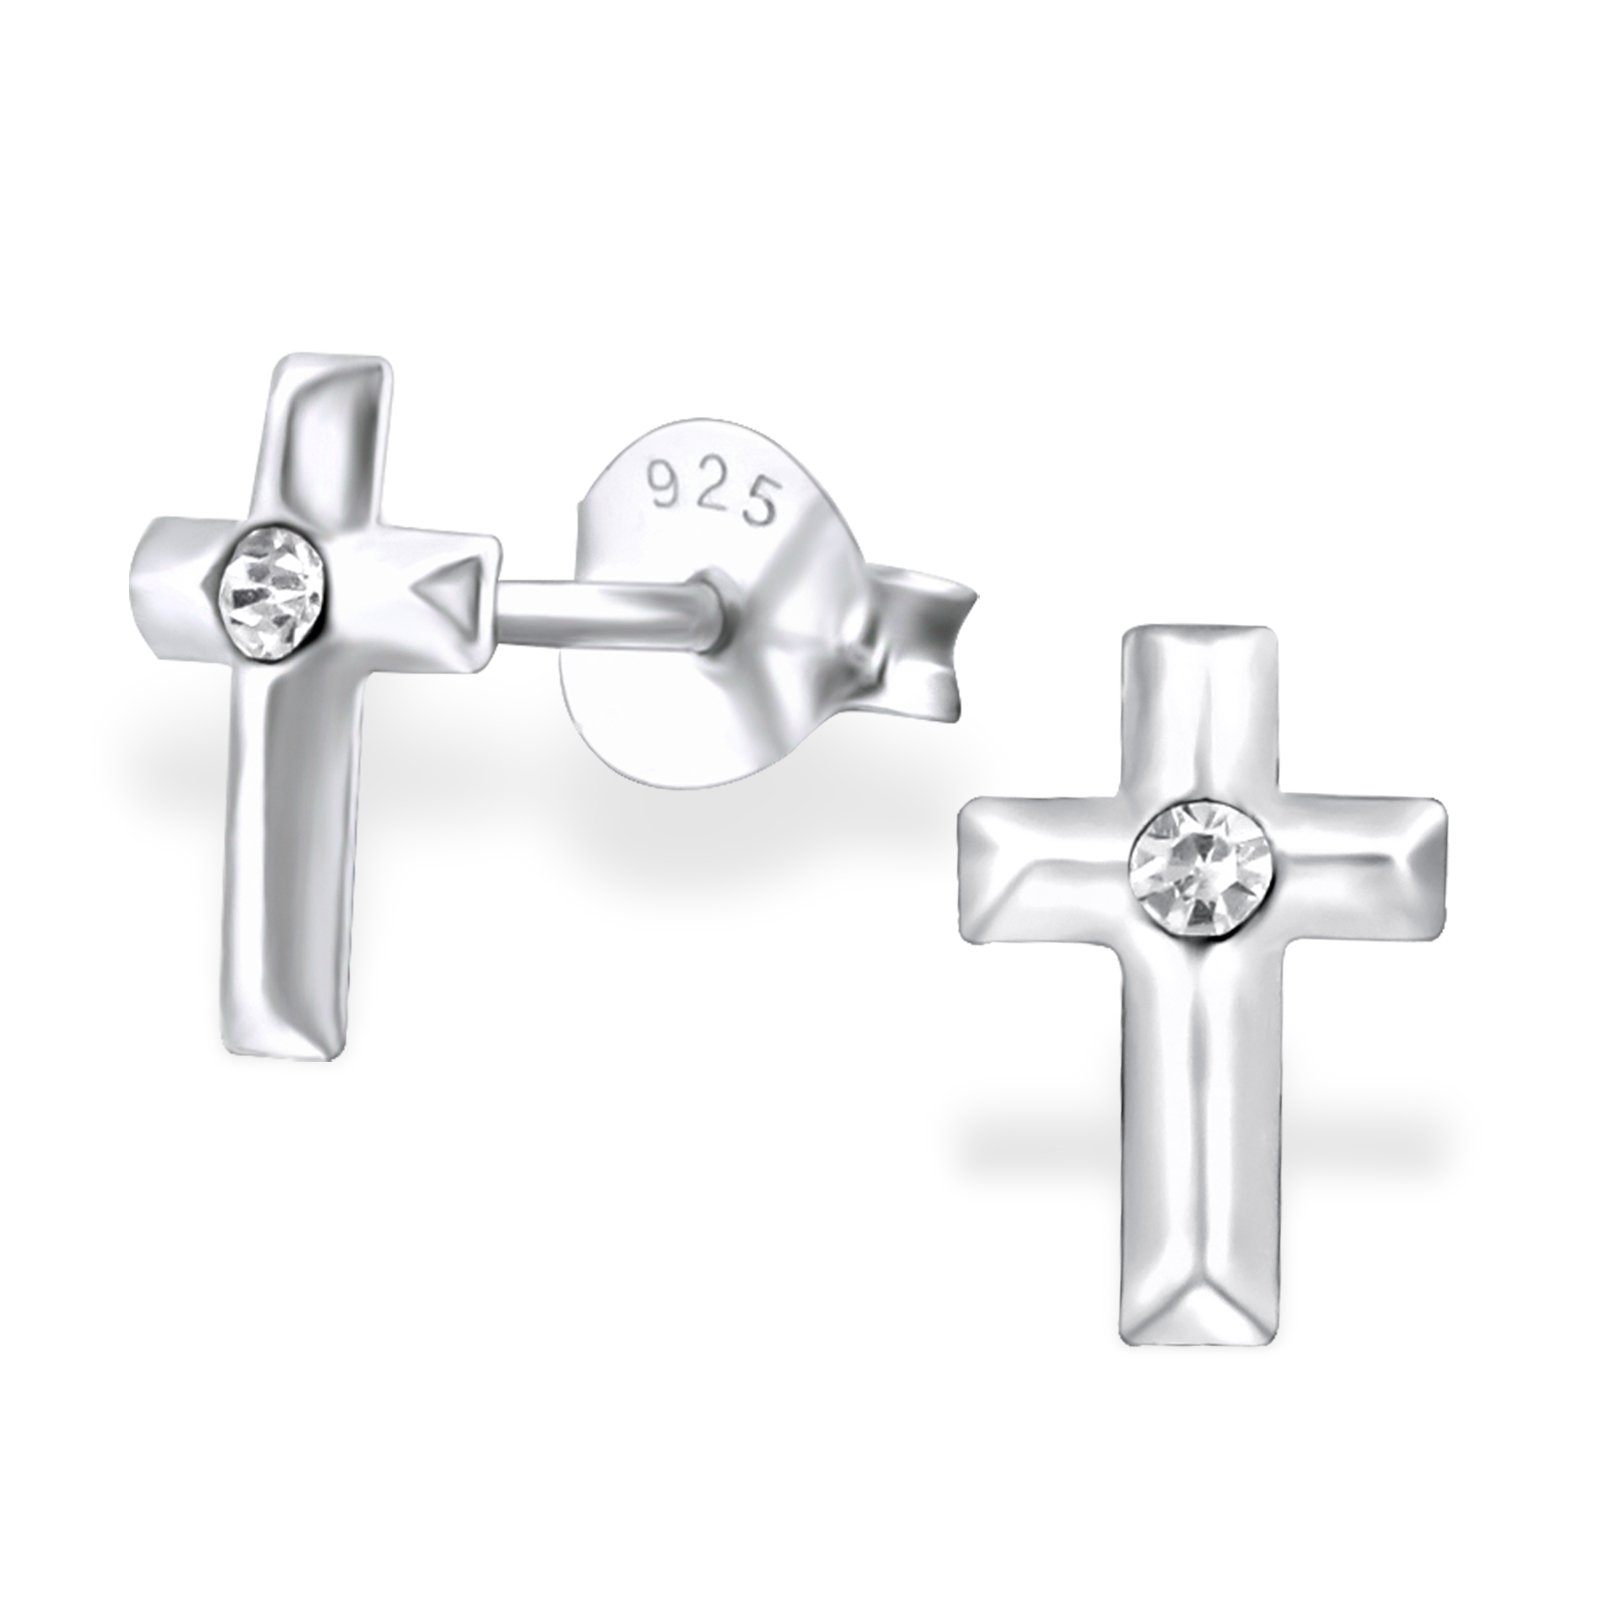 Hypoallergenic Cross Stud Earrings with Crystal for Girls (Nickel Free and Safe for Sensitive Ears) - Crystal